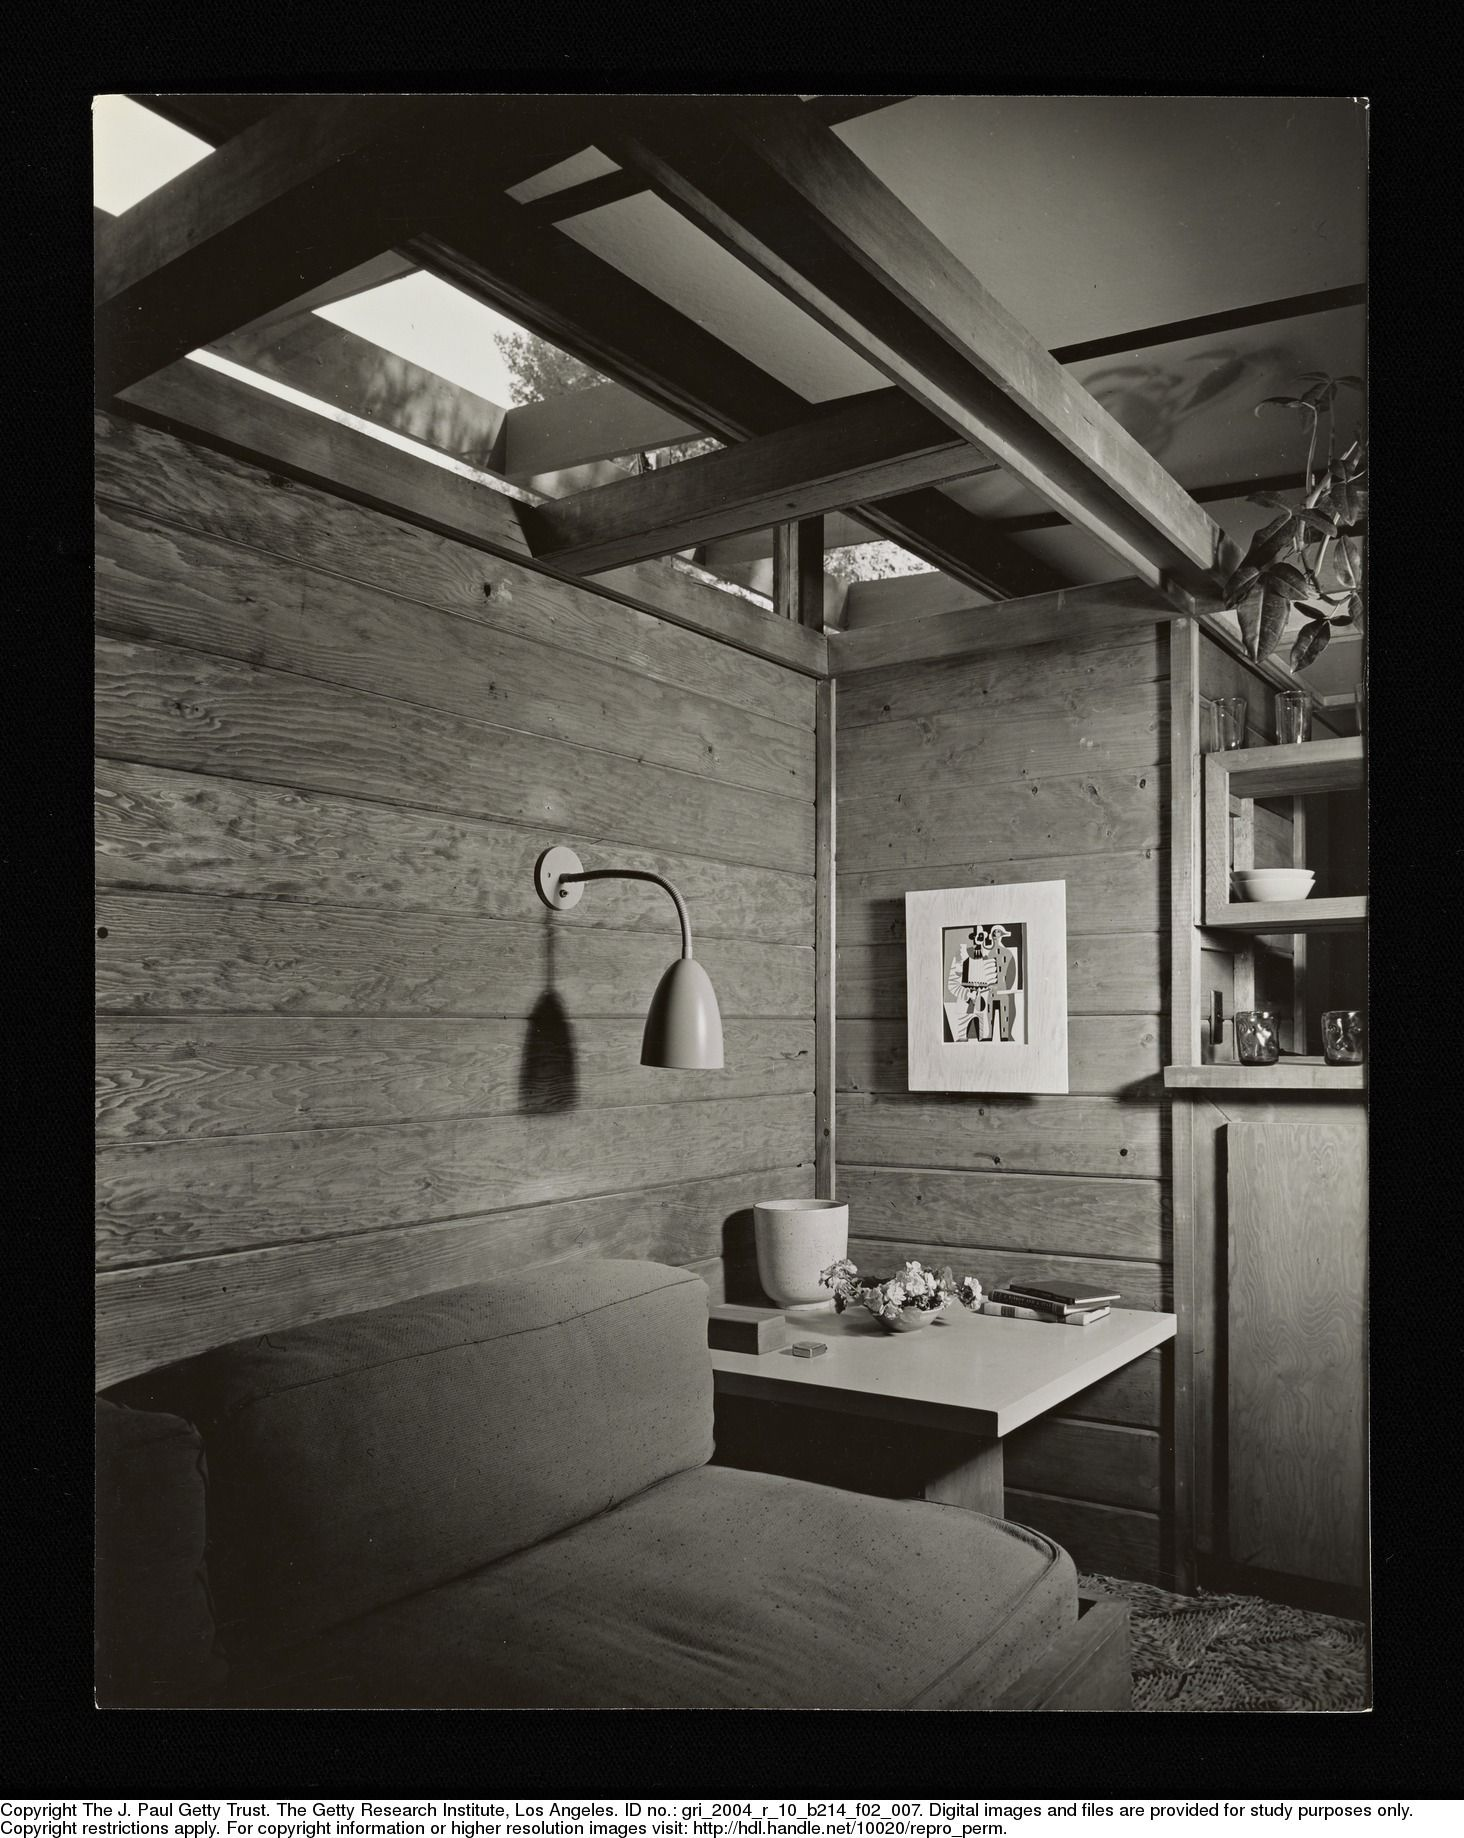 SHULMAN, JULIUS (1910-2009) [Drake House - interior, Los Angeles, CA. 1946. Gordon Drake architect].